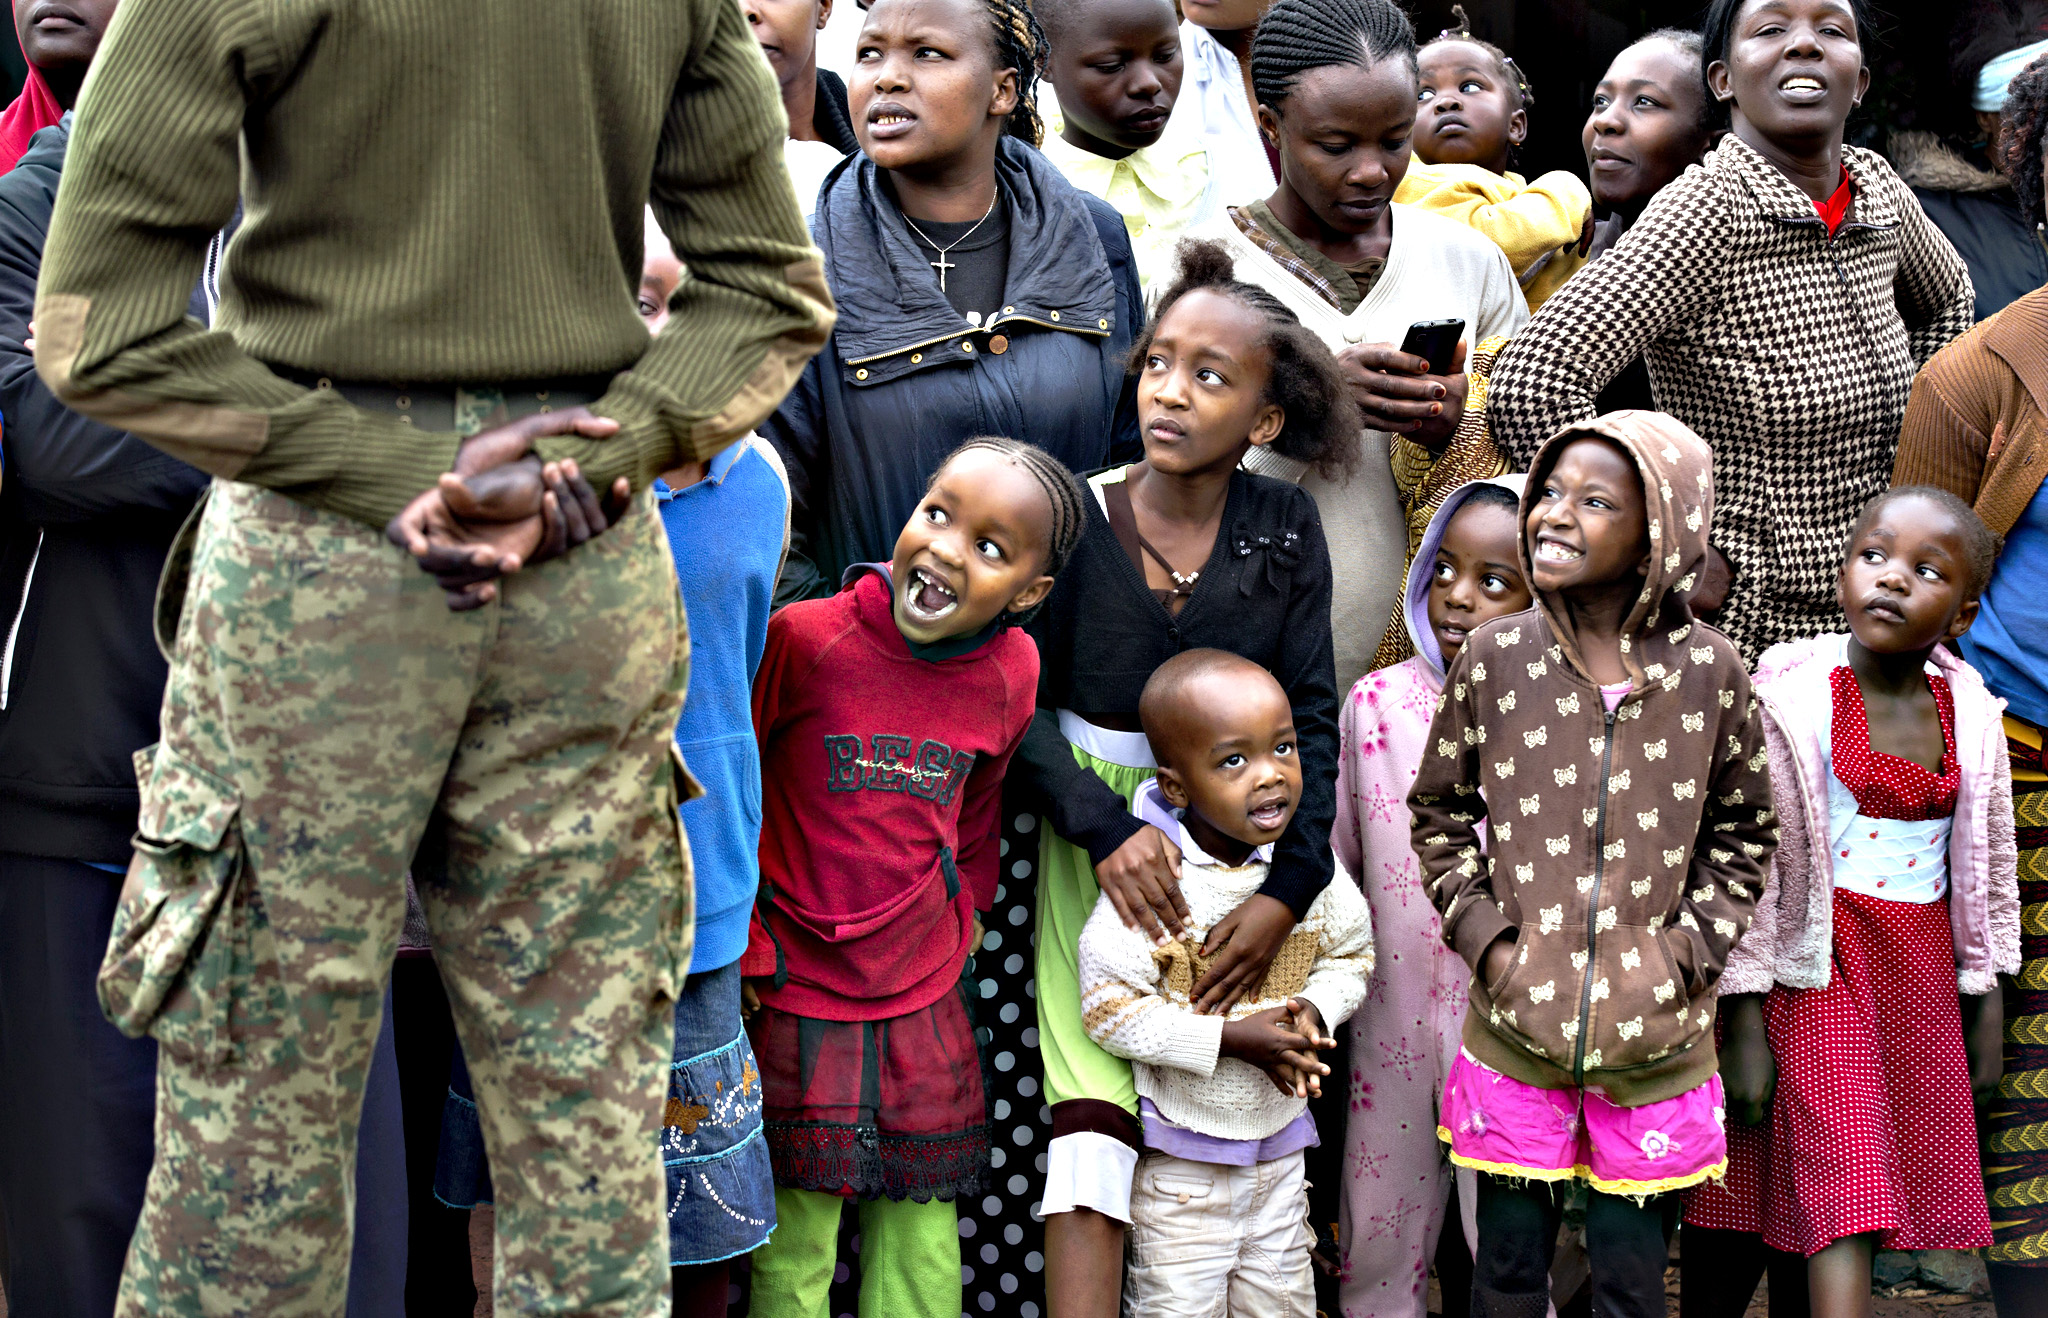 Children gasp as they watch a Kenyan Police helicopter fly overhead, while awaiting for the arrival of Pope Francis at the St. Joseph The Worker Catholic Church in the Kangemi slum of Nairobi, Kenya Friday, Nov. 27, 2015. Pope Francis is in Kenya on his first-ever trip to Africa, a six-day pilgrimage that will also take him to Uganda and the Central African Republic.